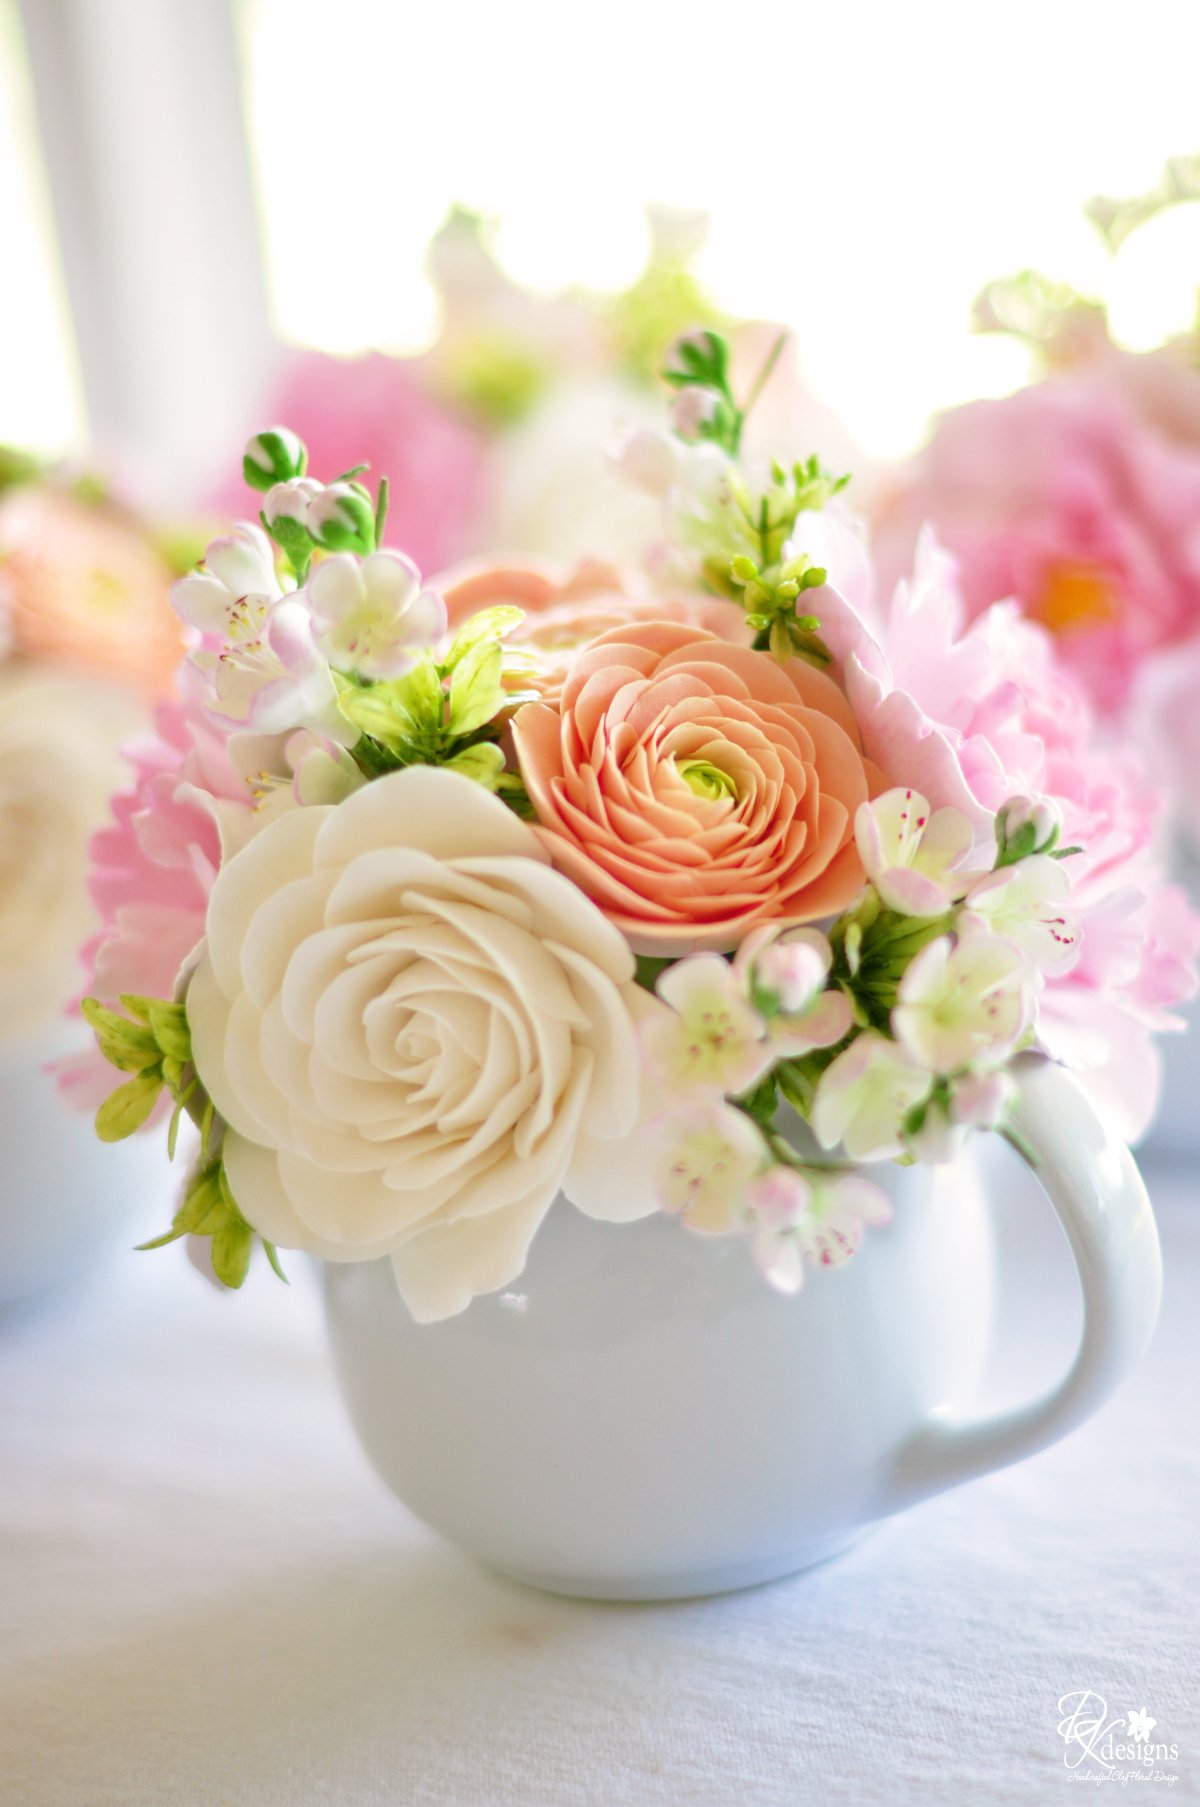 Creative Ideas For Mothers Day Vase DesignsFlower Press